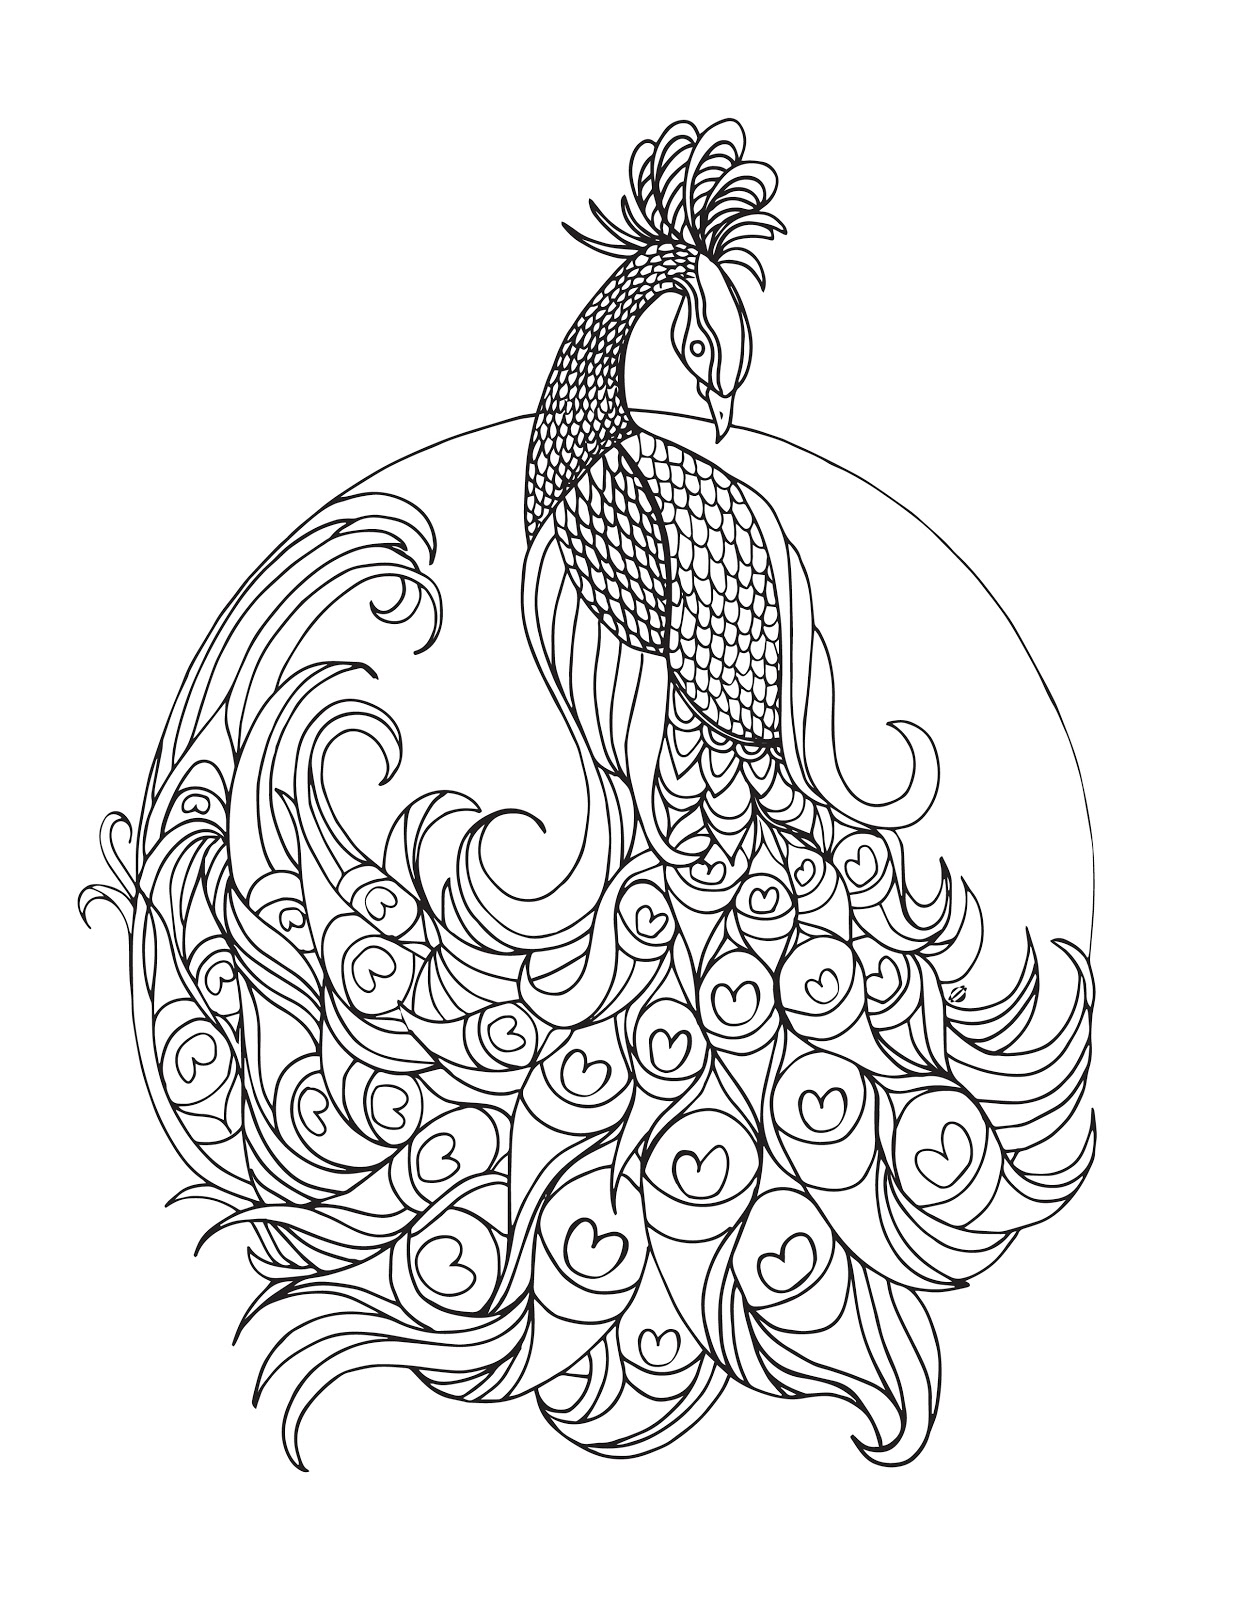 Lostbumblebee grown up colouring peacock for Coloring page peacock